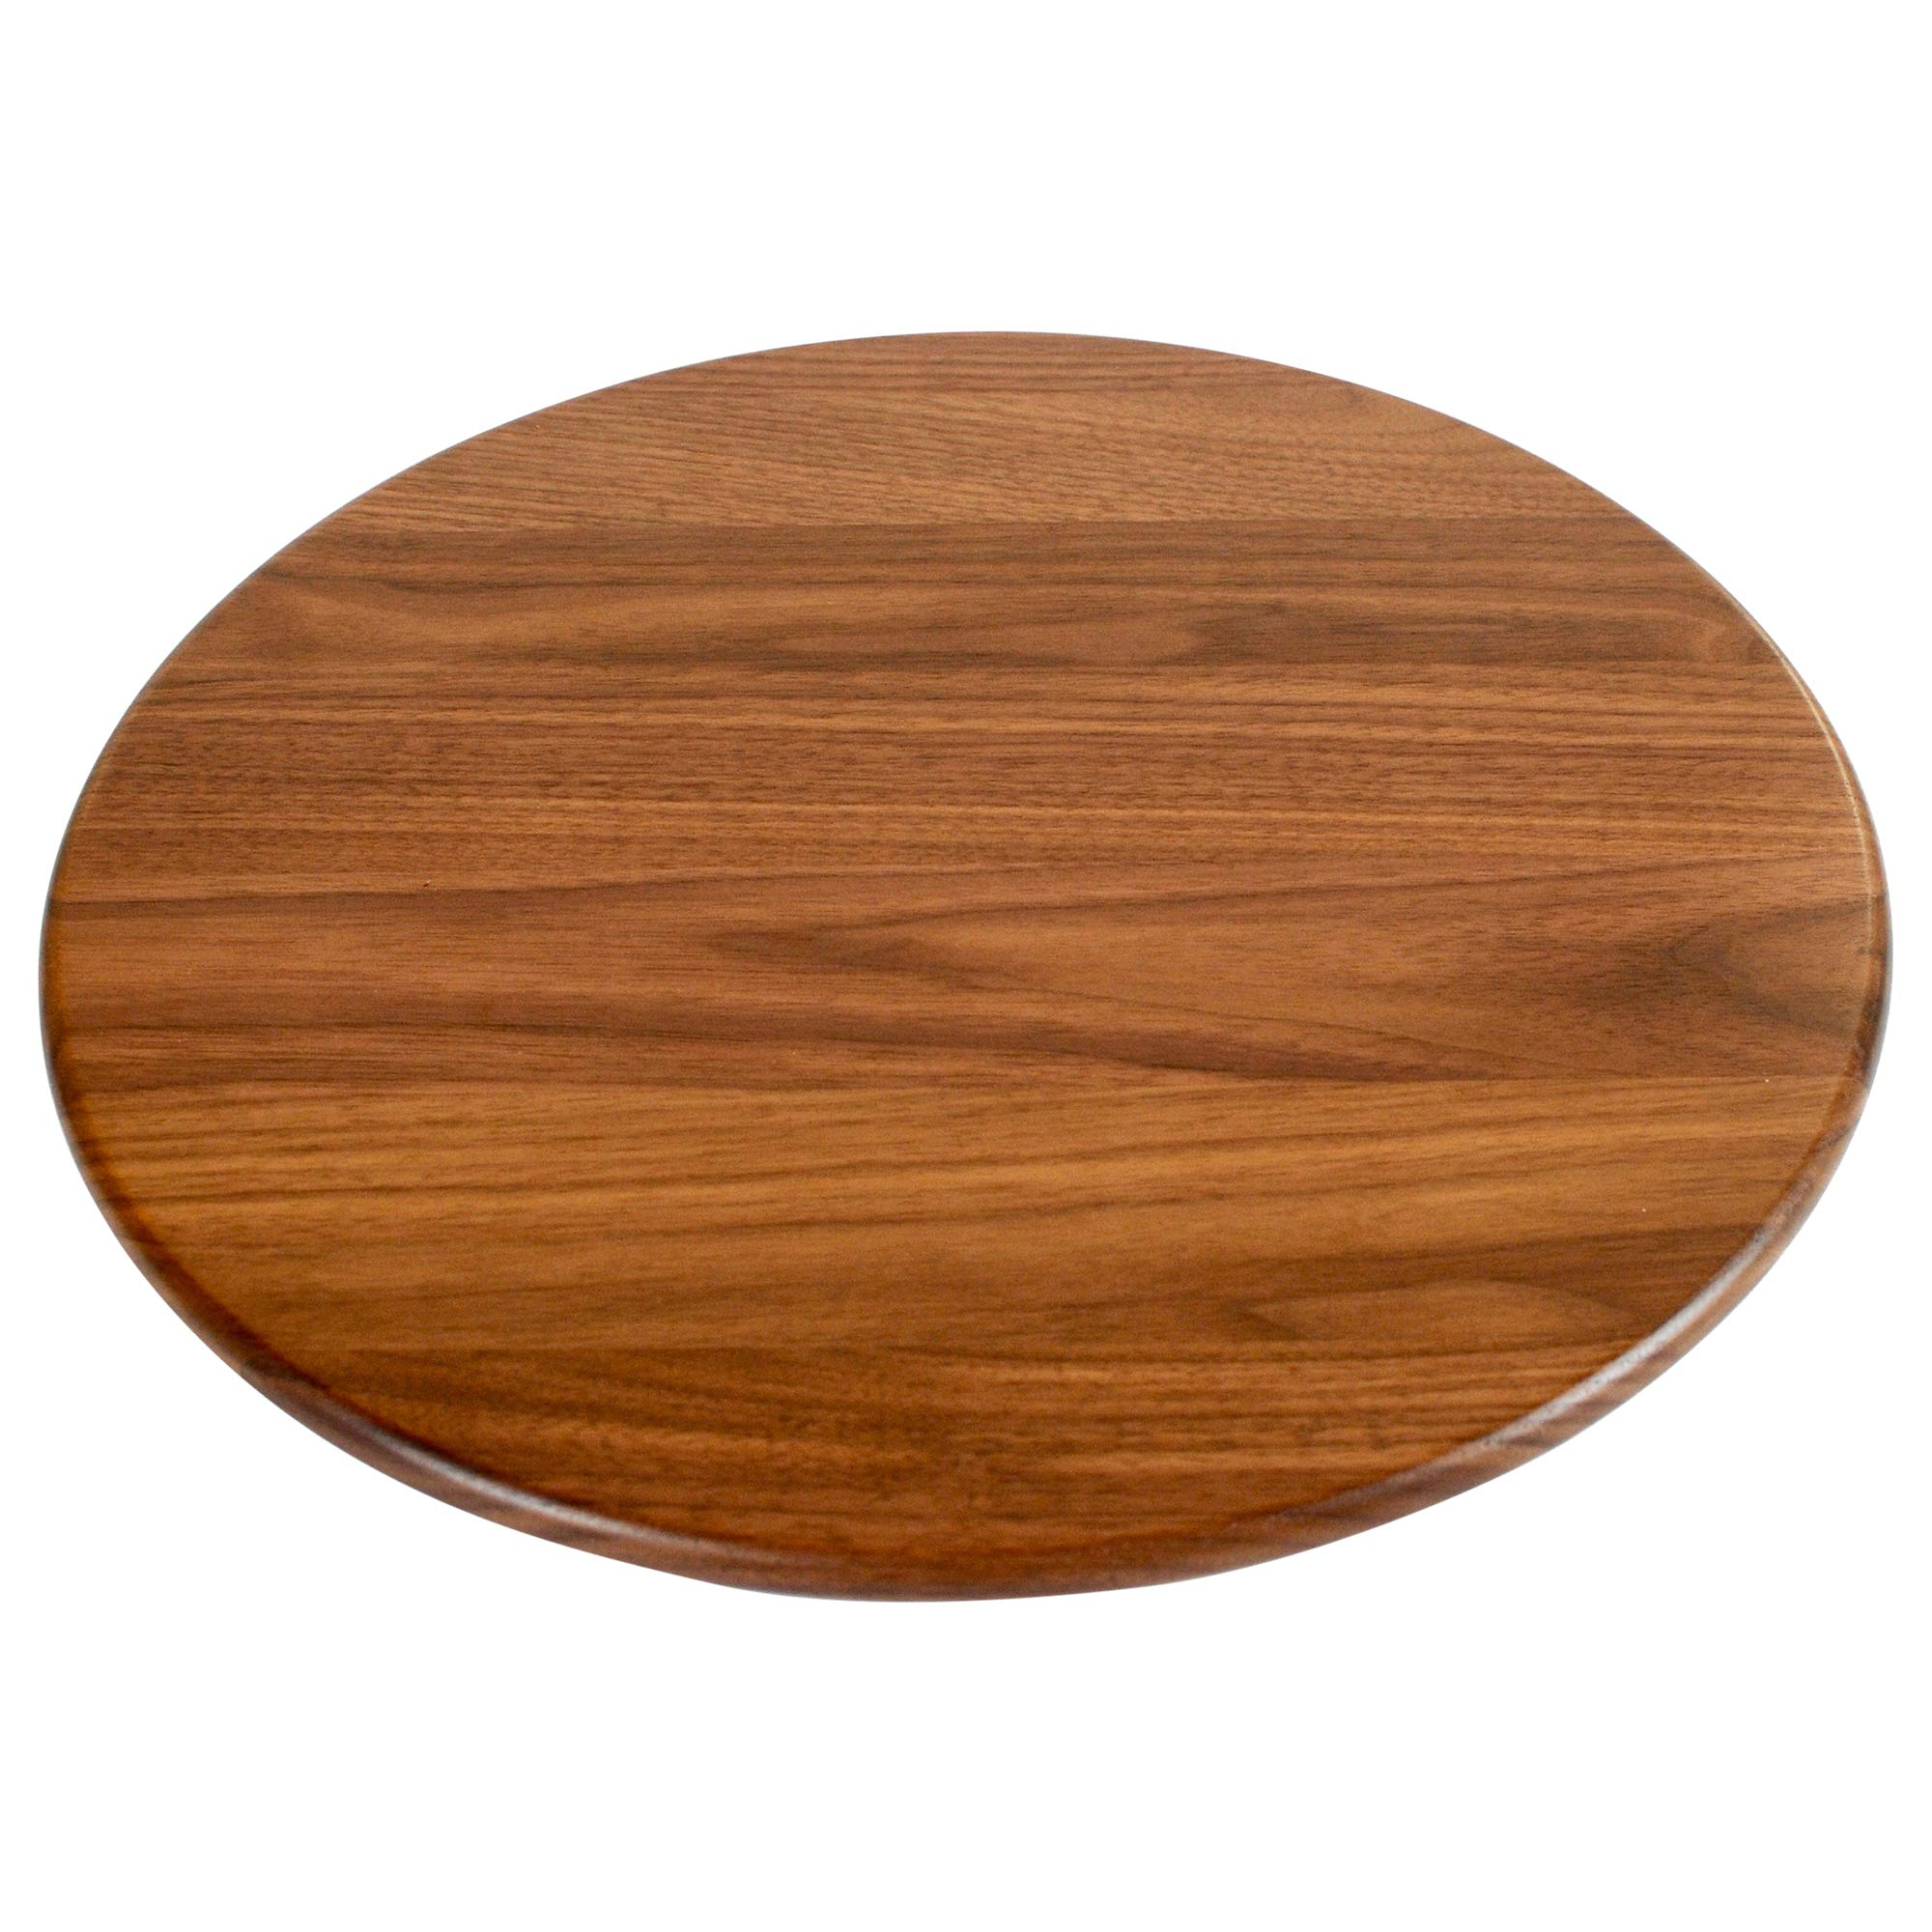 Virginia Boys Kitchens Lazy Susan - 13.5 Inch Round Wooden Turntable for Dining Table, Kitchen Countertop, Pantry or Decorative Serving Centerpiece Display by Virginia Boys Kitchens